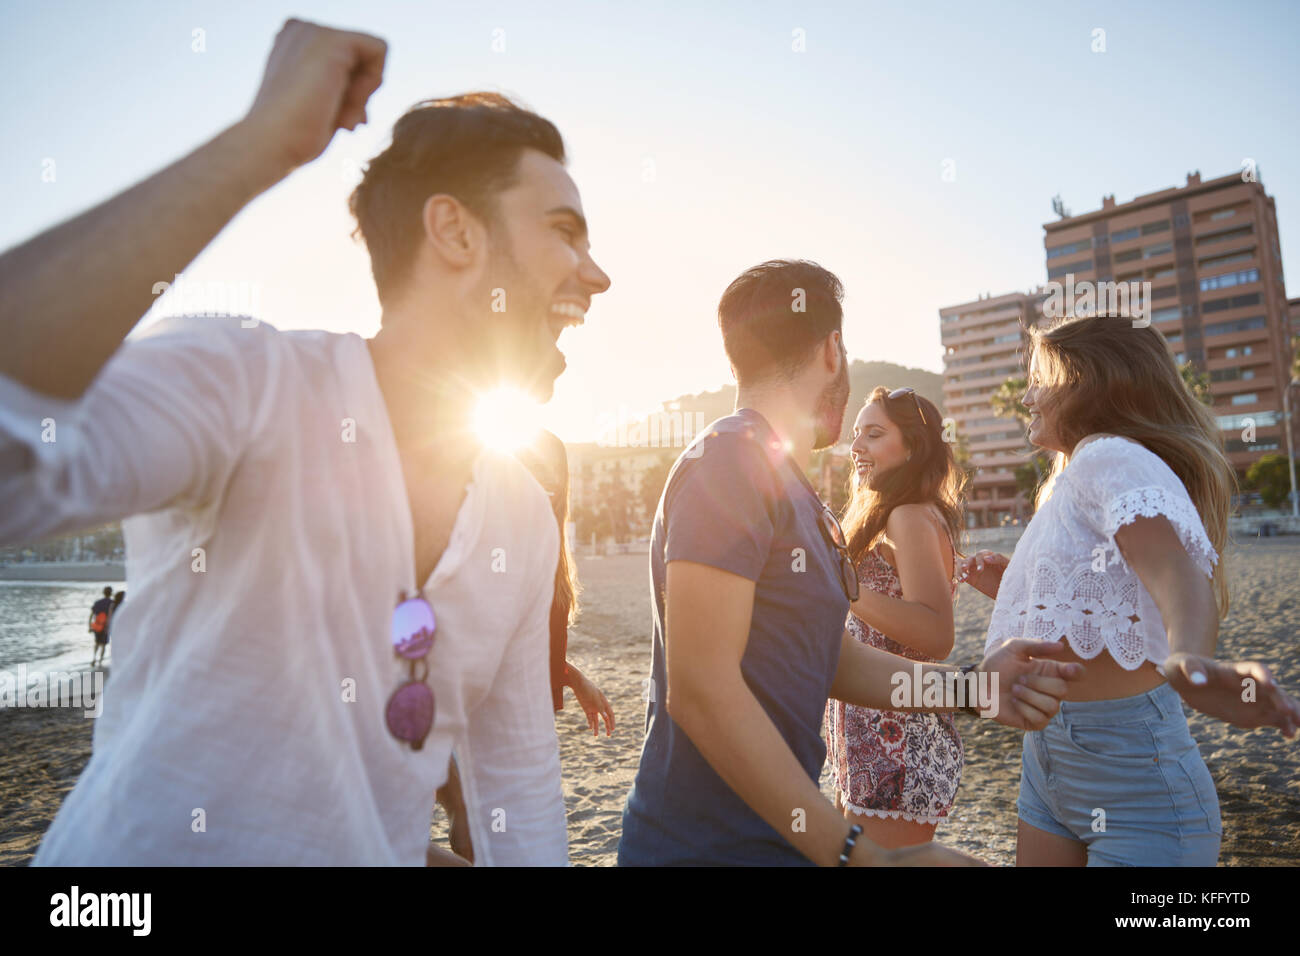 Portrait of young men dancing with their girlfriends on beach - Stock Image